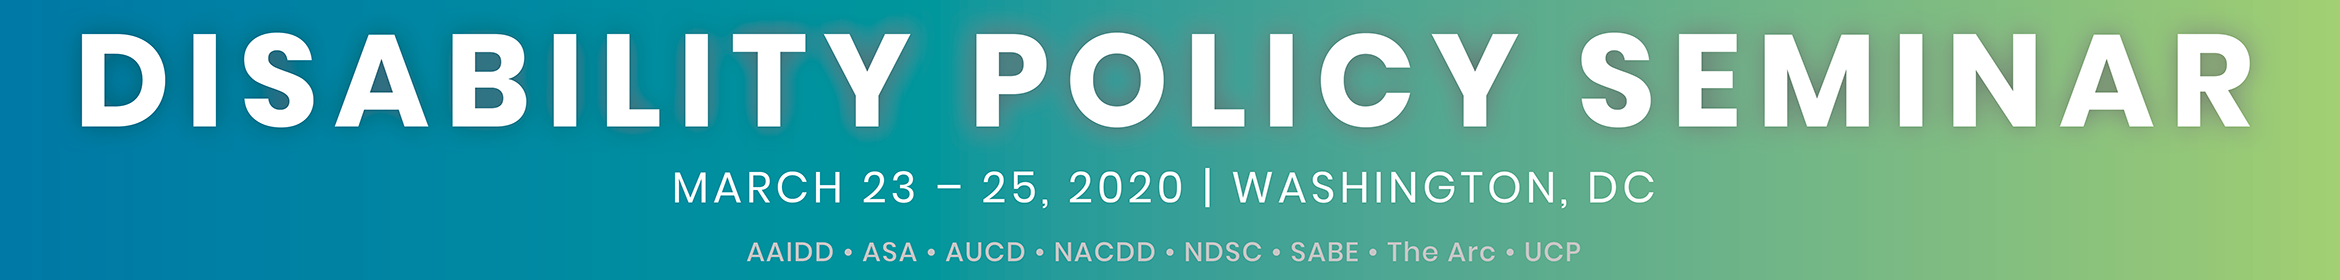 2020 Disability Policy Seminar Main banner